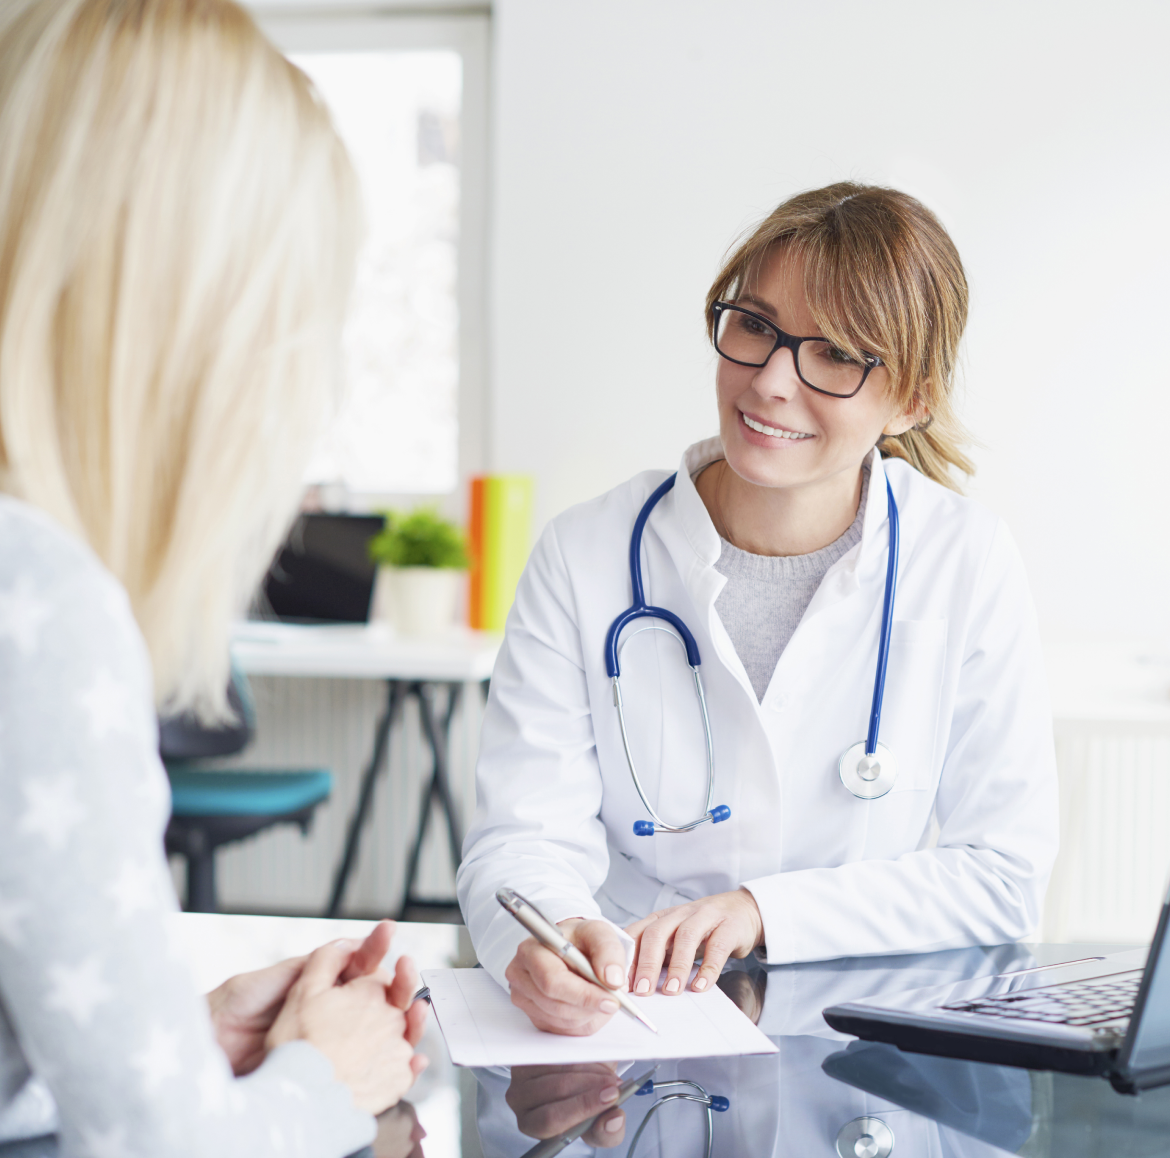 Doctor Discusses Financial Options